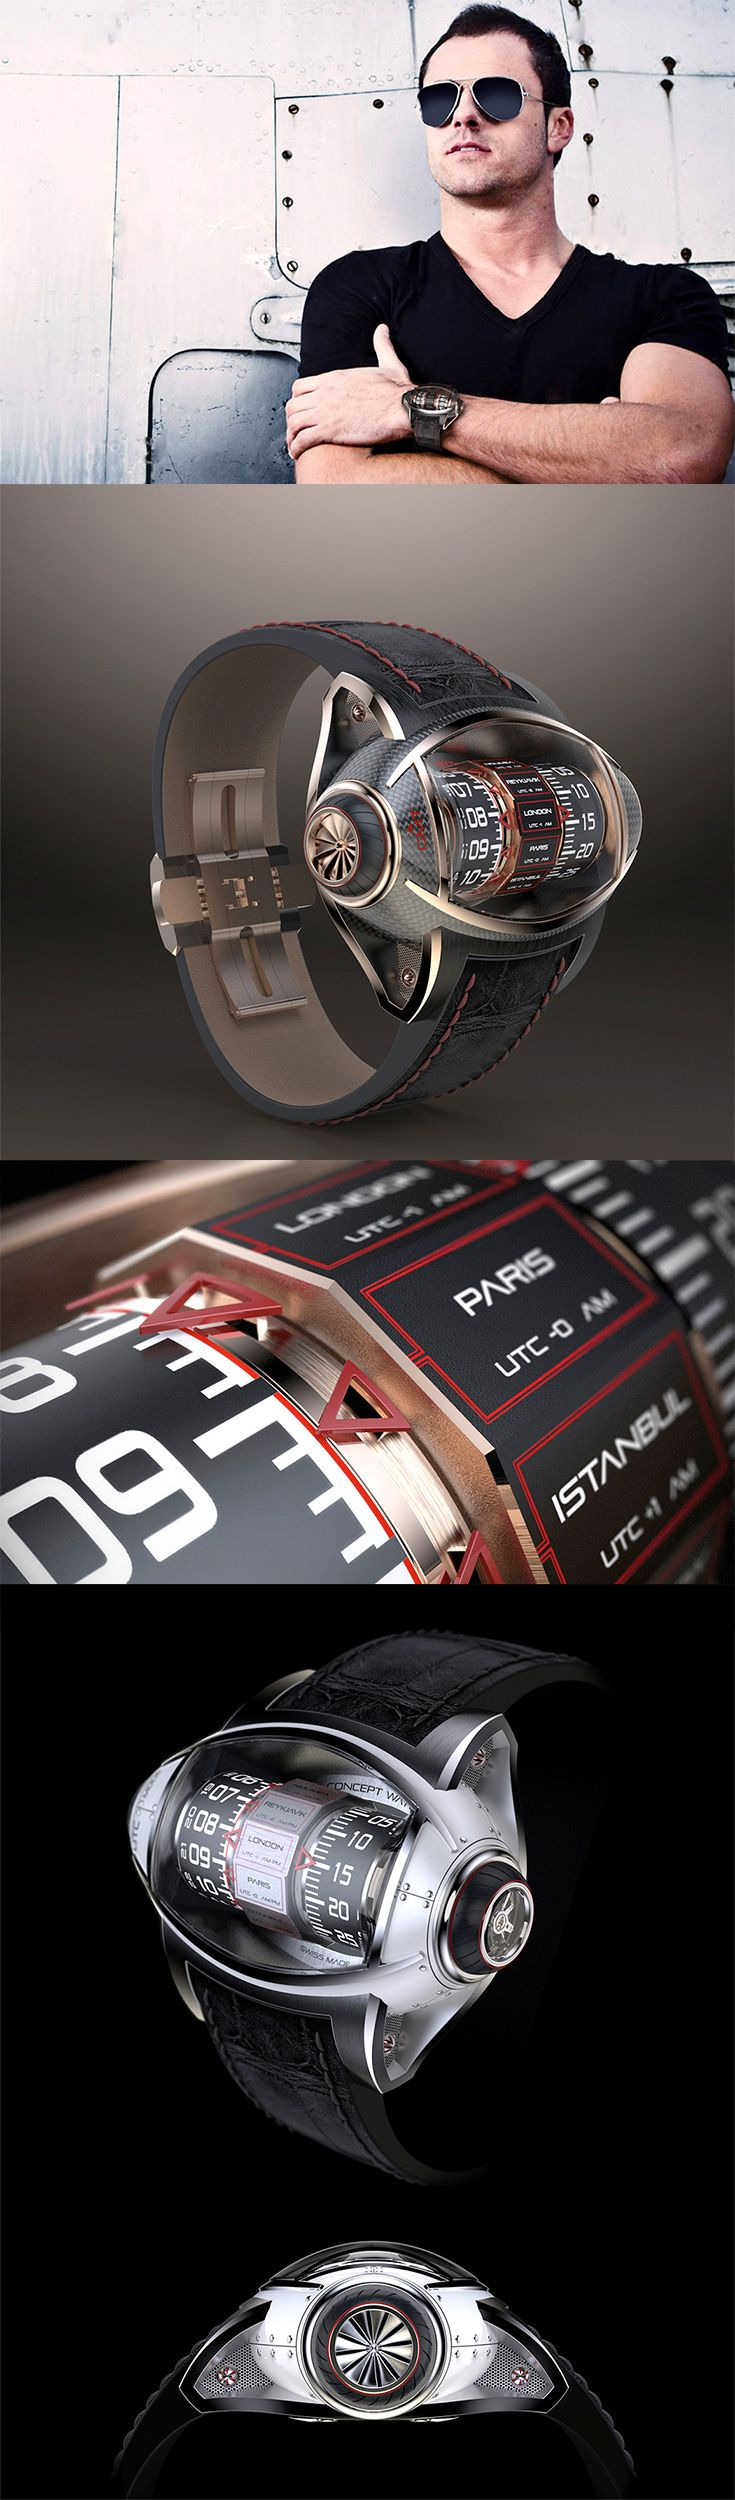 Aeronautics has informed watch design since the 1930s and this concept by Germain Baillot is no exception despite its modern time-telling functionality. Unlike flat-faced pilot watches, this alternative timepiece features a vertical tourbillon. Read More: http://www.yankodesign.com/2016/11/17/soar-in-style/